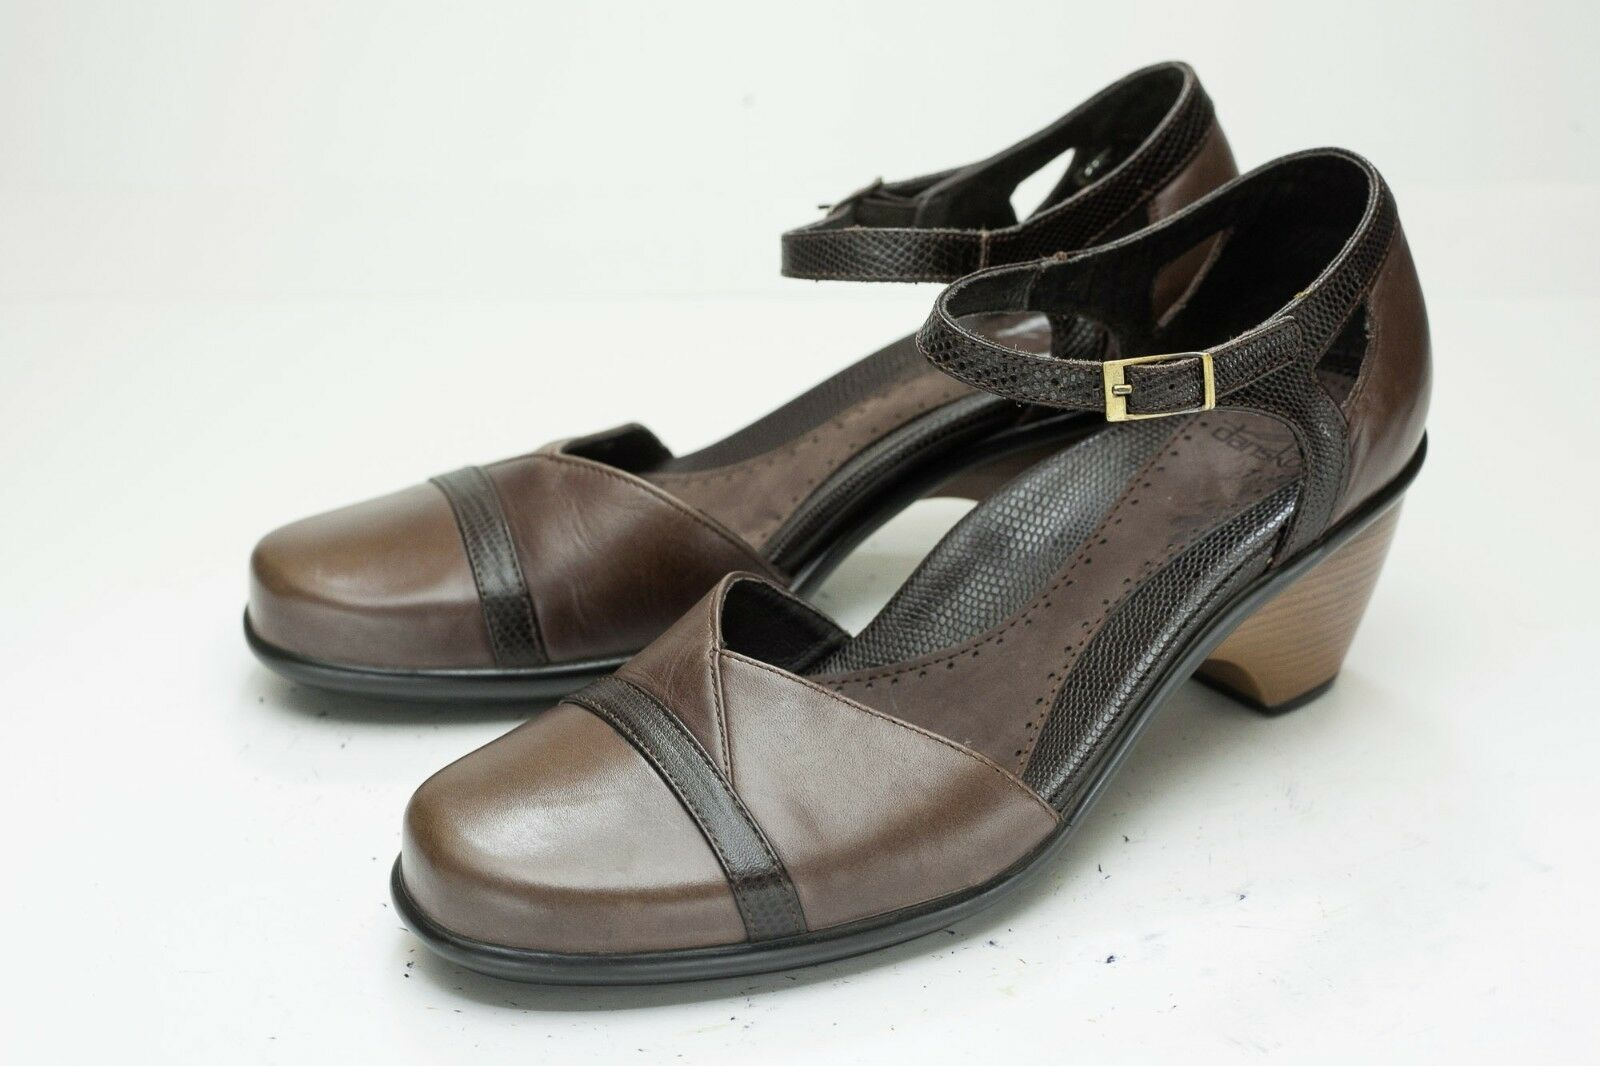 Dansko 8.5 9 Brown Heels